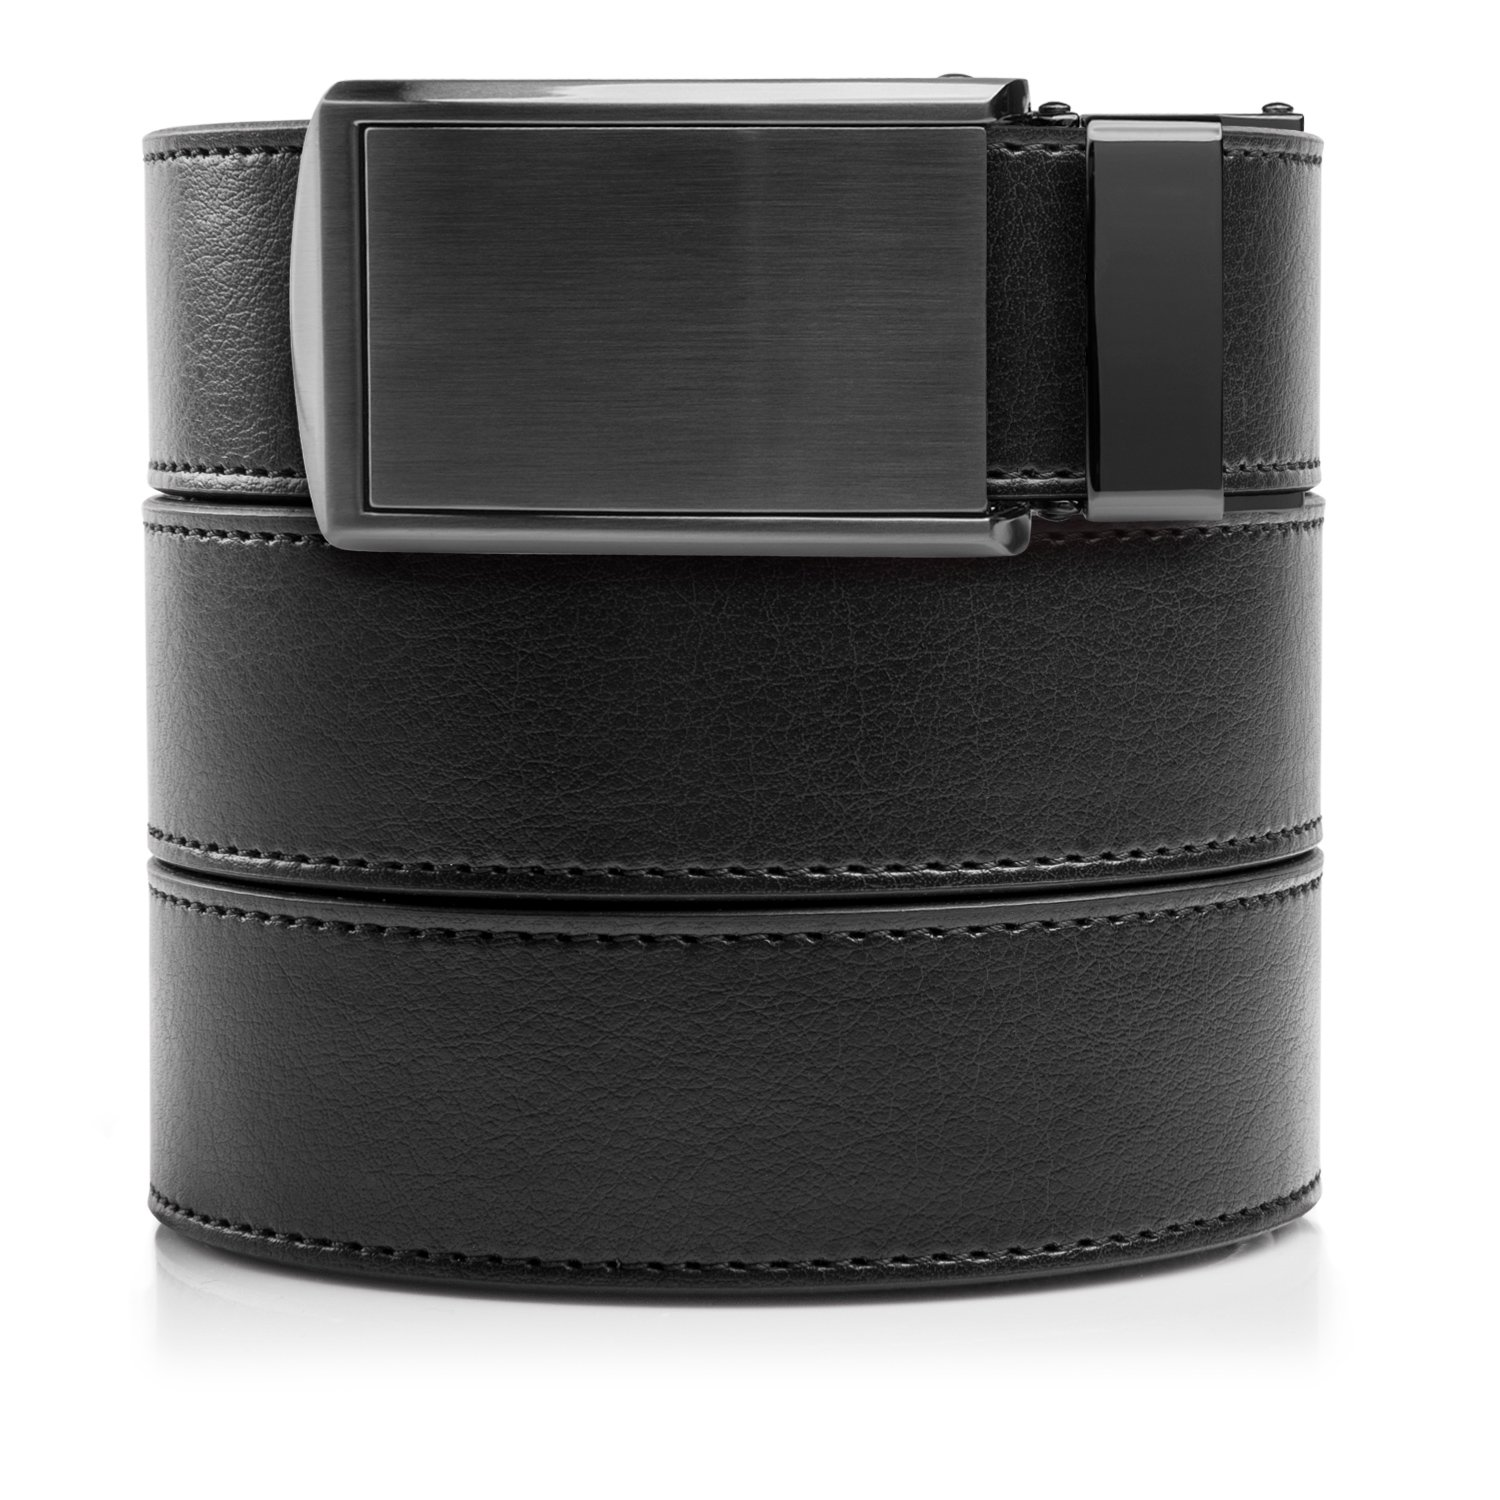 SlideBelts Men's Vegan Leather Belt without Holes - Gunmetal Buckle/Black Leather (Trim-to-fit: Up to 48'' Waist)